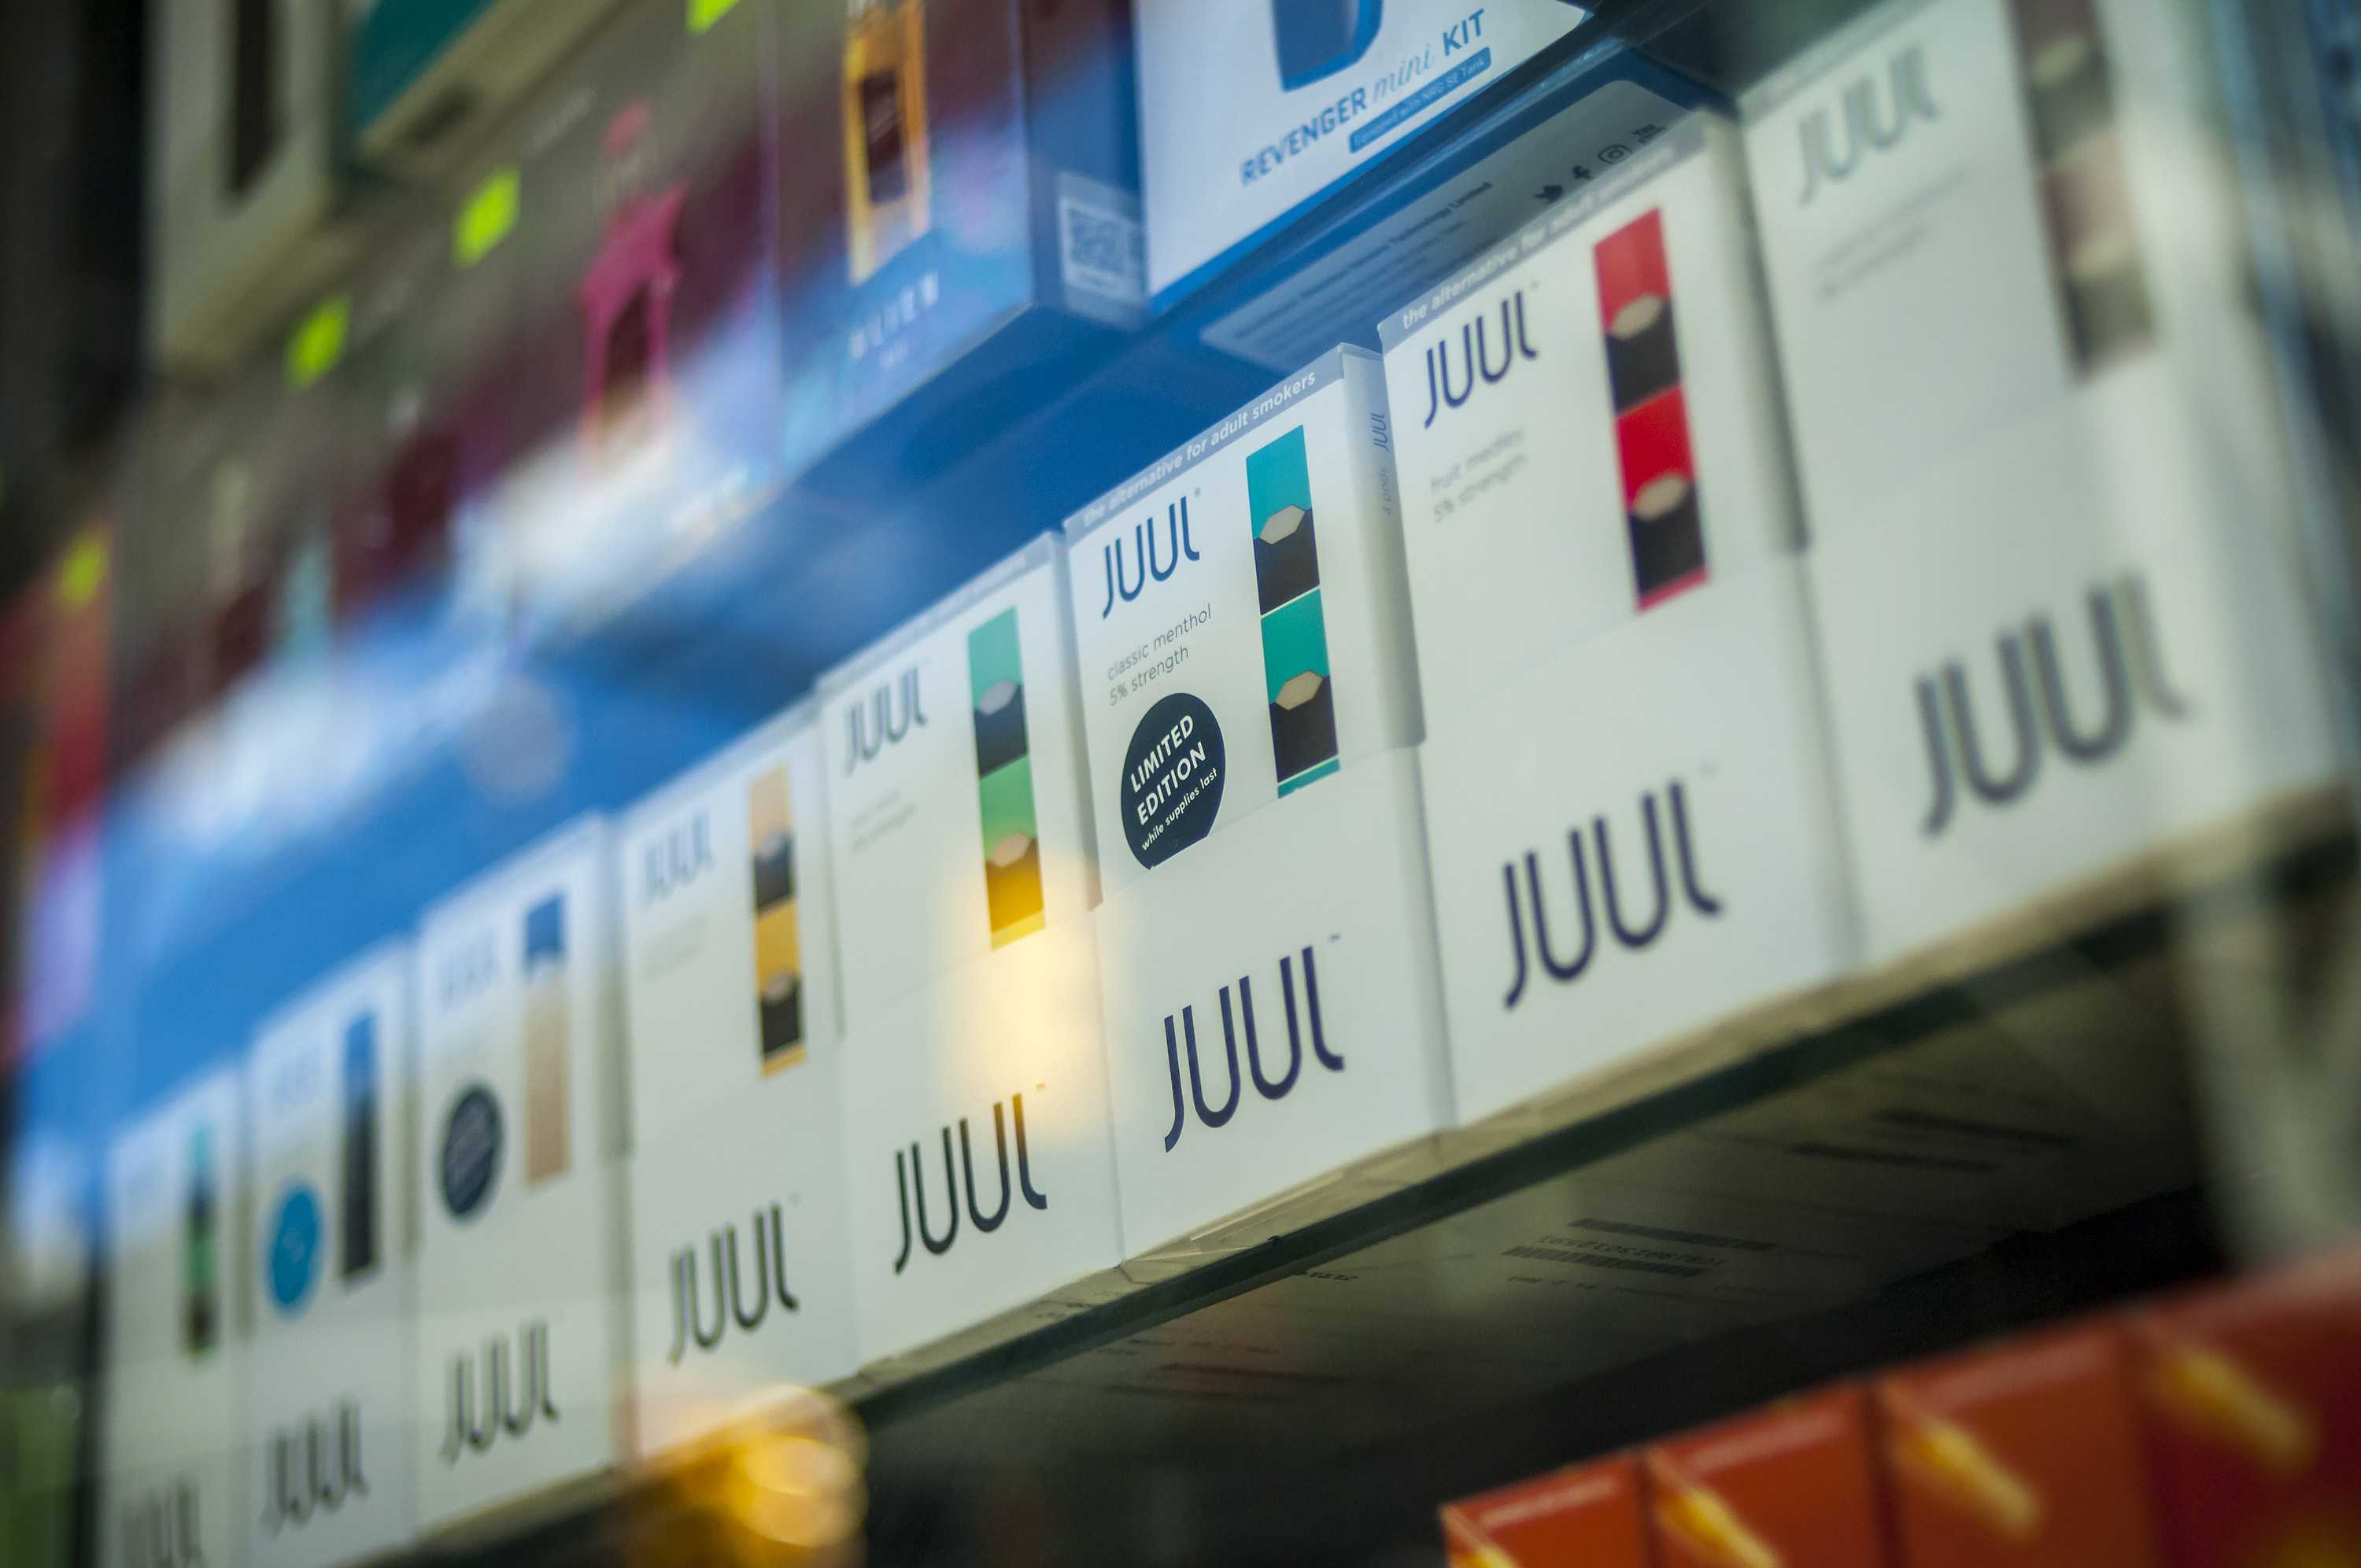 Juul Needs to Change its Game Plan To Keep Winning The Vape